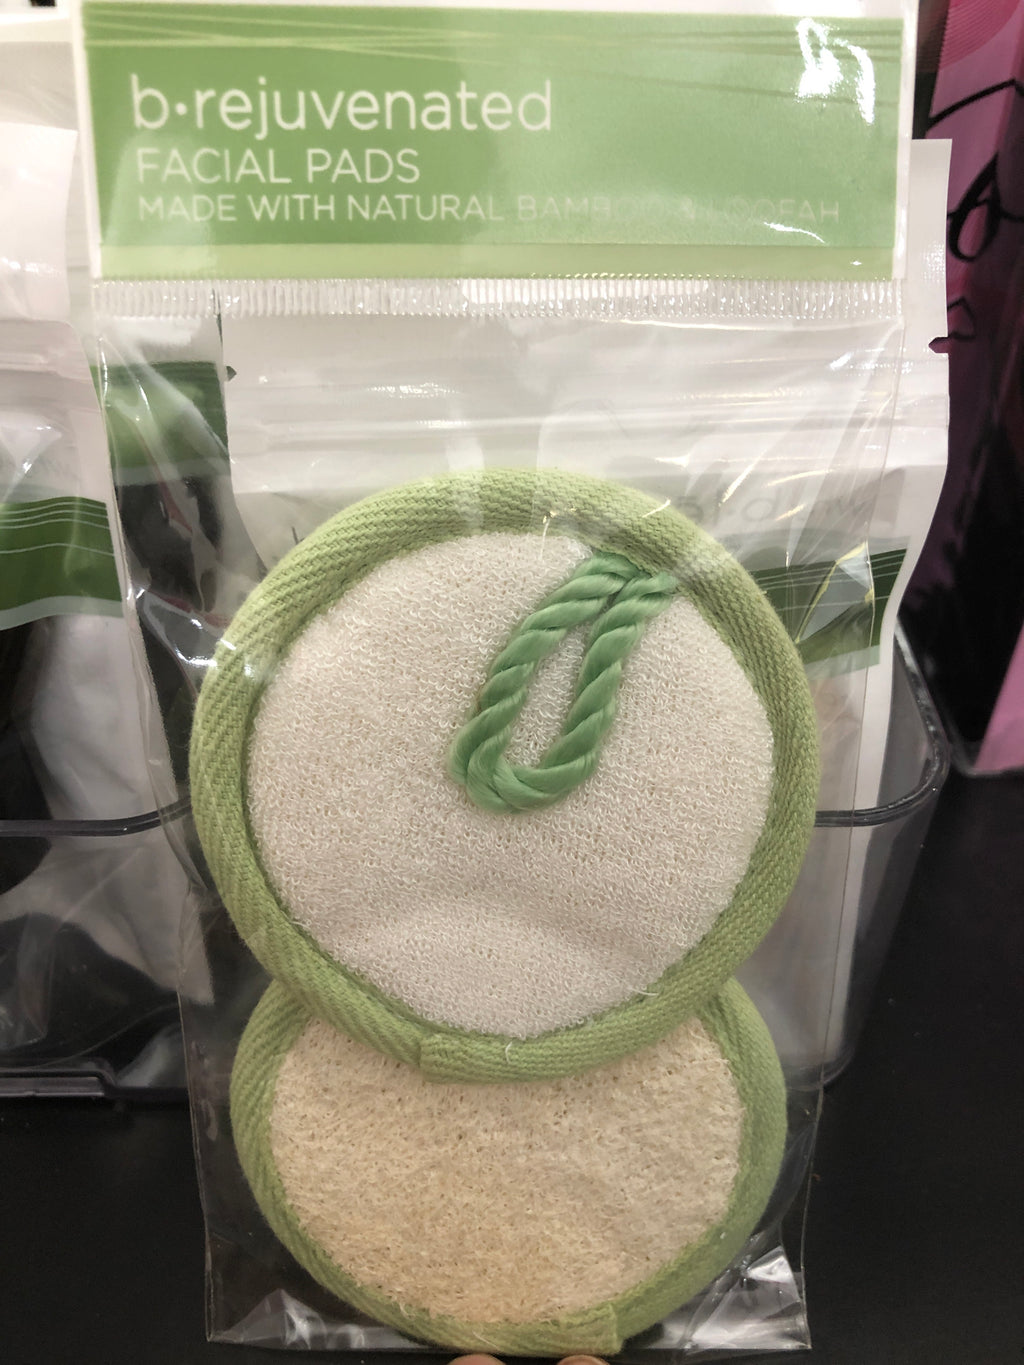 Facial Pads made with Natural Bamboo & Loofah